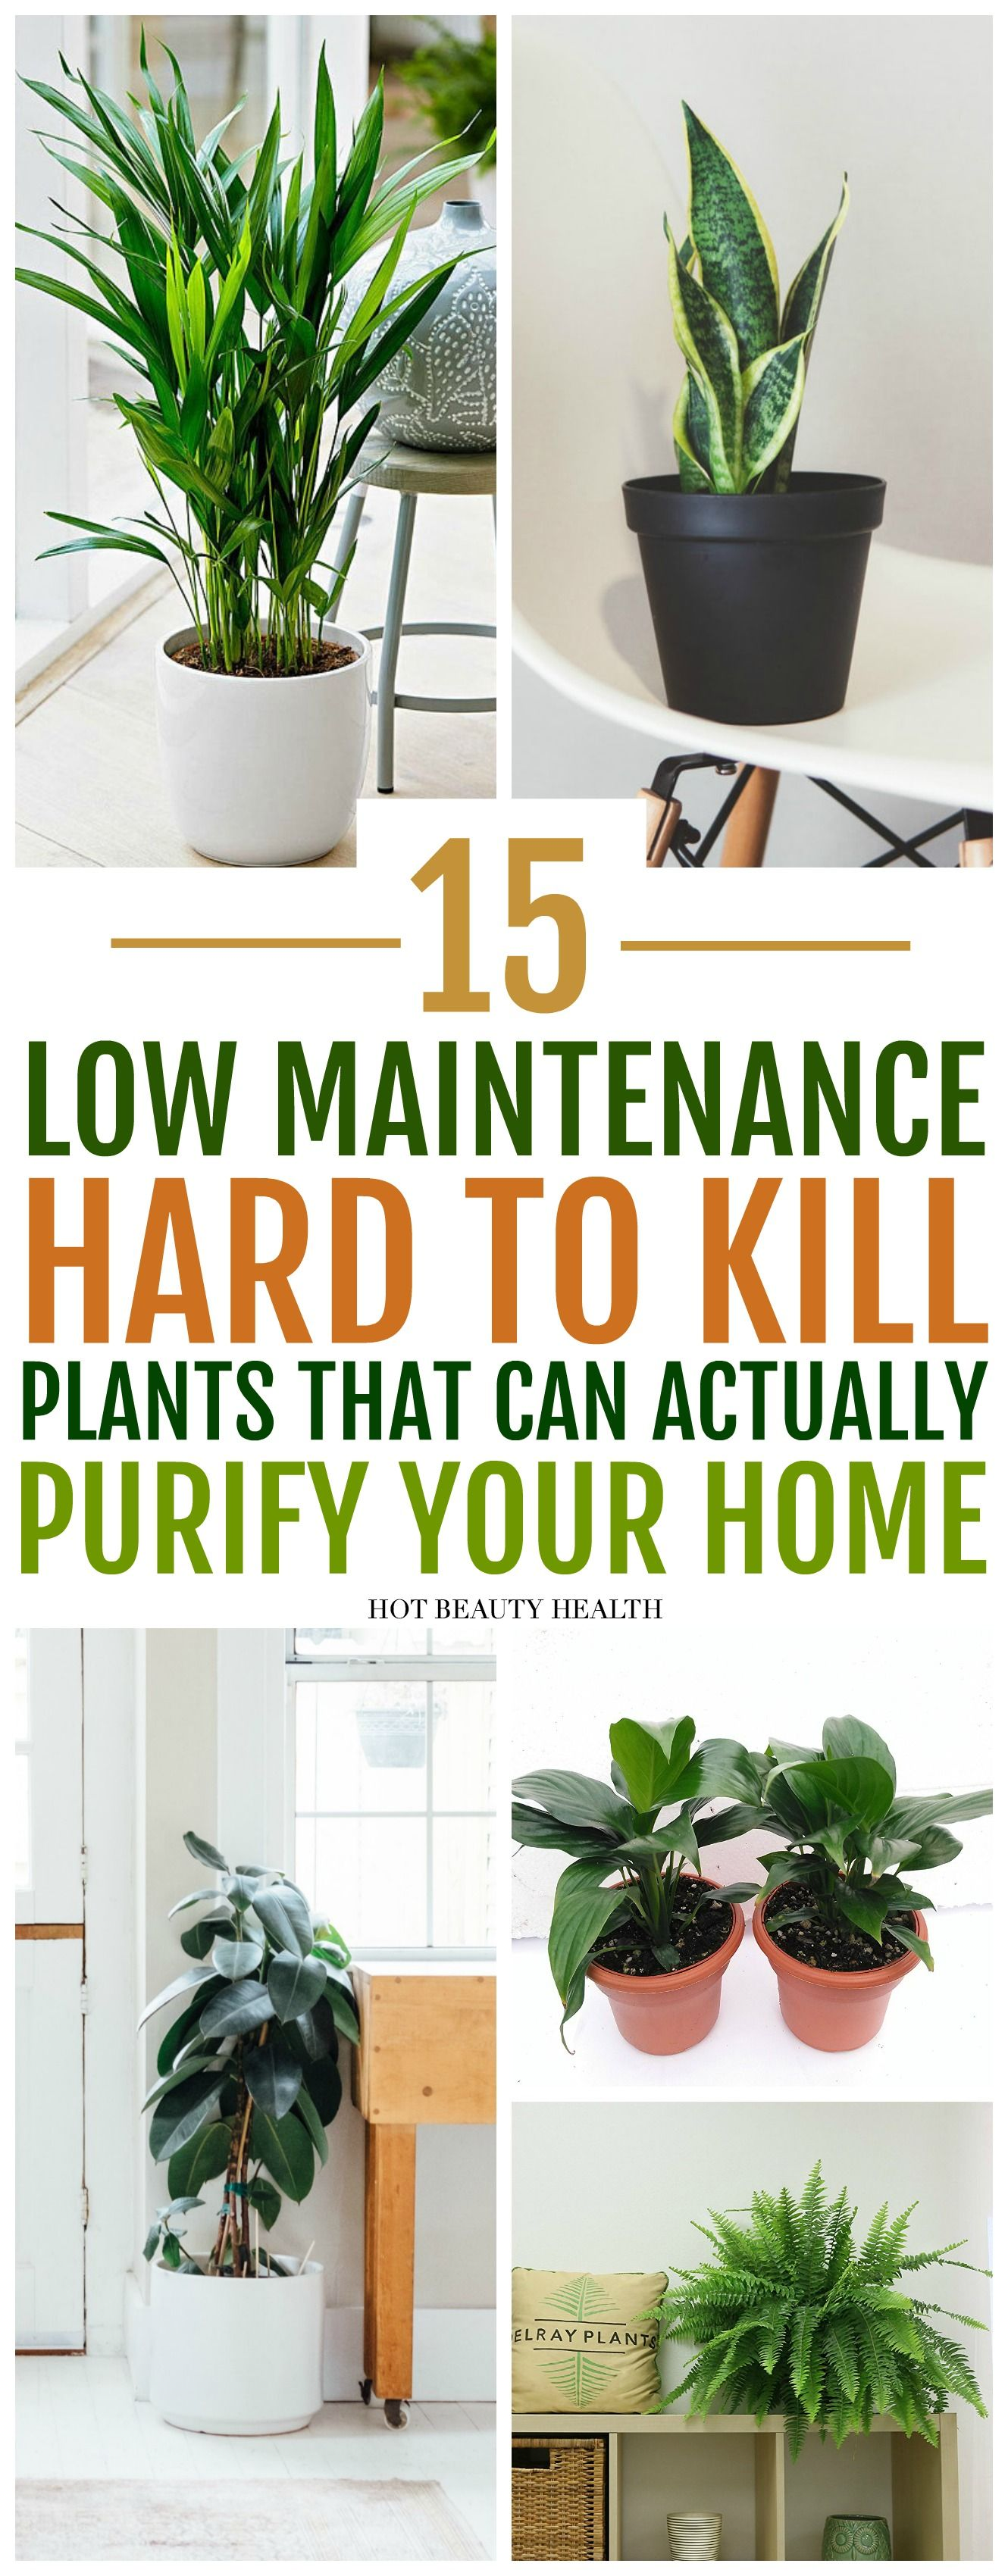 The best air purifying plants that are super low maintenance and hard to kill. According to NASA, these types of houseplants ( ex: gerbera daises, snake plants, peace lily, boston ferns, and more) are great for indoors to clean the air. Place anywhere inside your home as decor like bedrooms, bathroom and kitchen or at the office. Many need only low light and are also pet safe. via @dajih